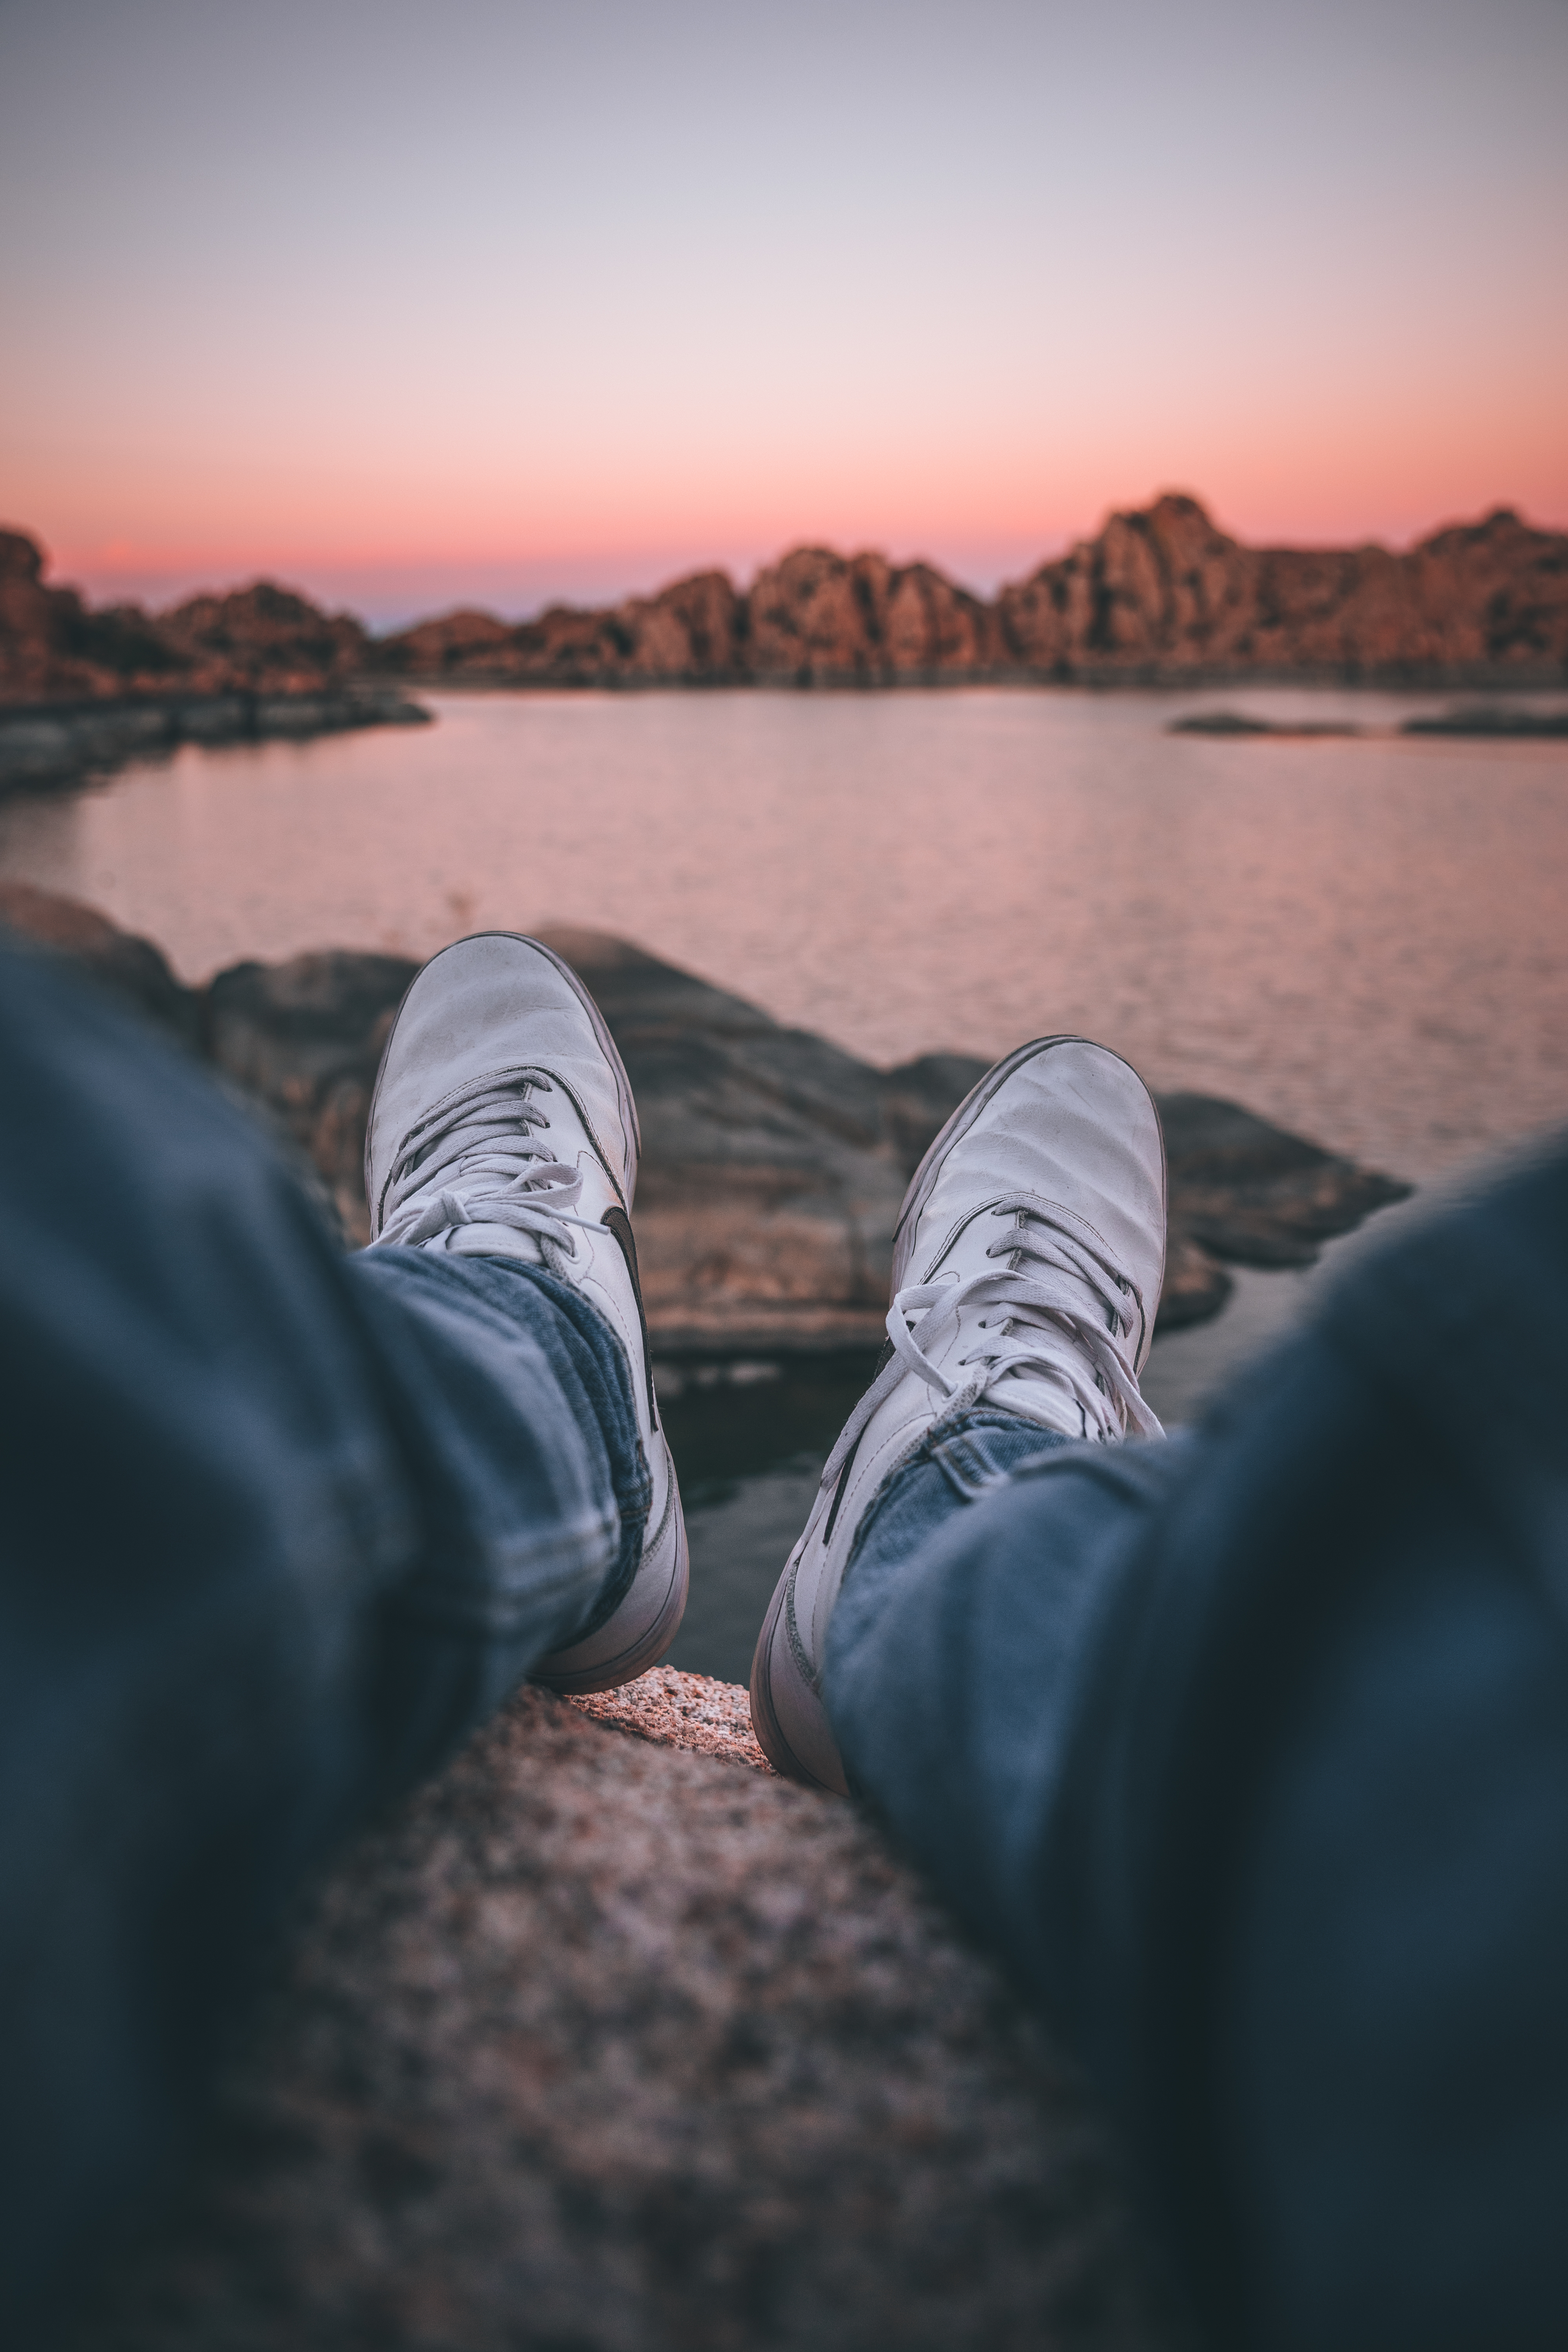 person-in-blue-denim-jeans-and-gray-sneakers-sitting-on-rock-near-body-of-water-during